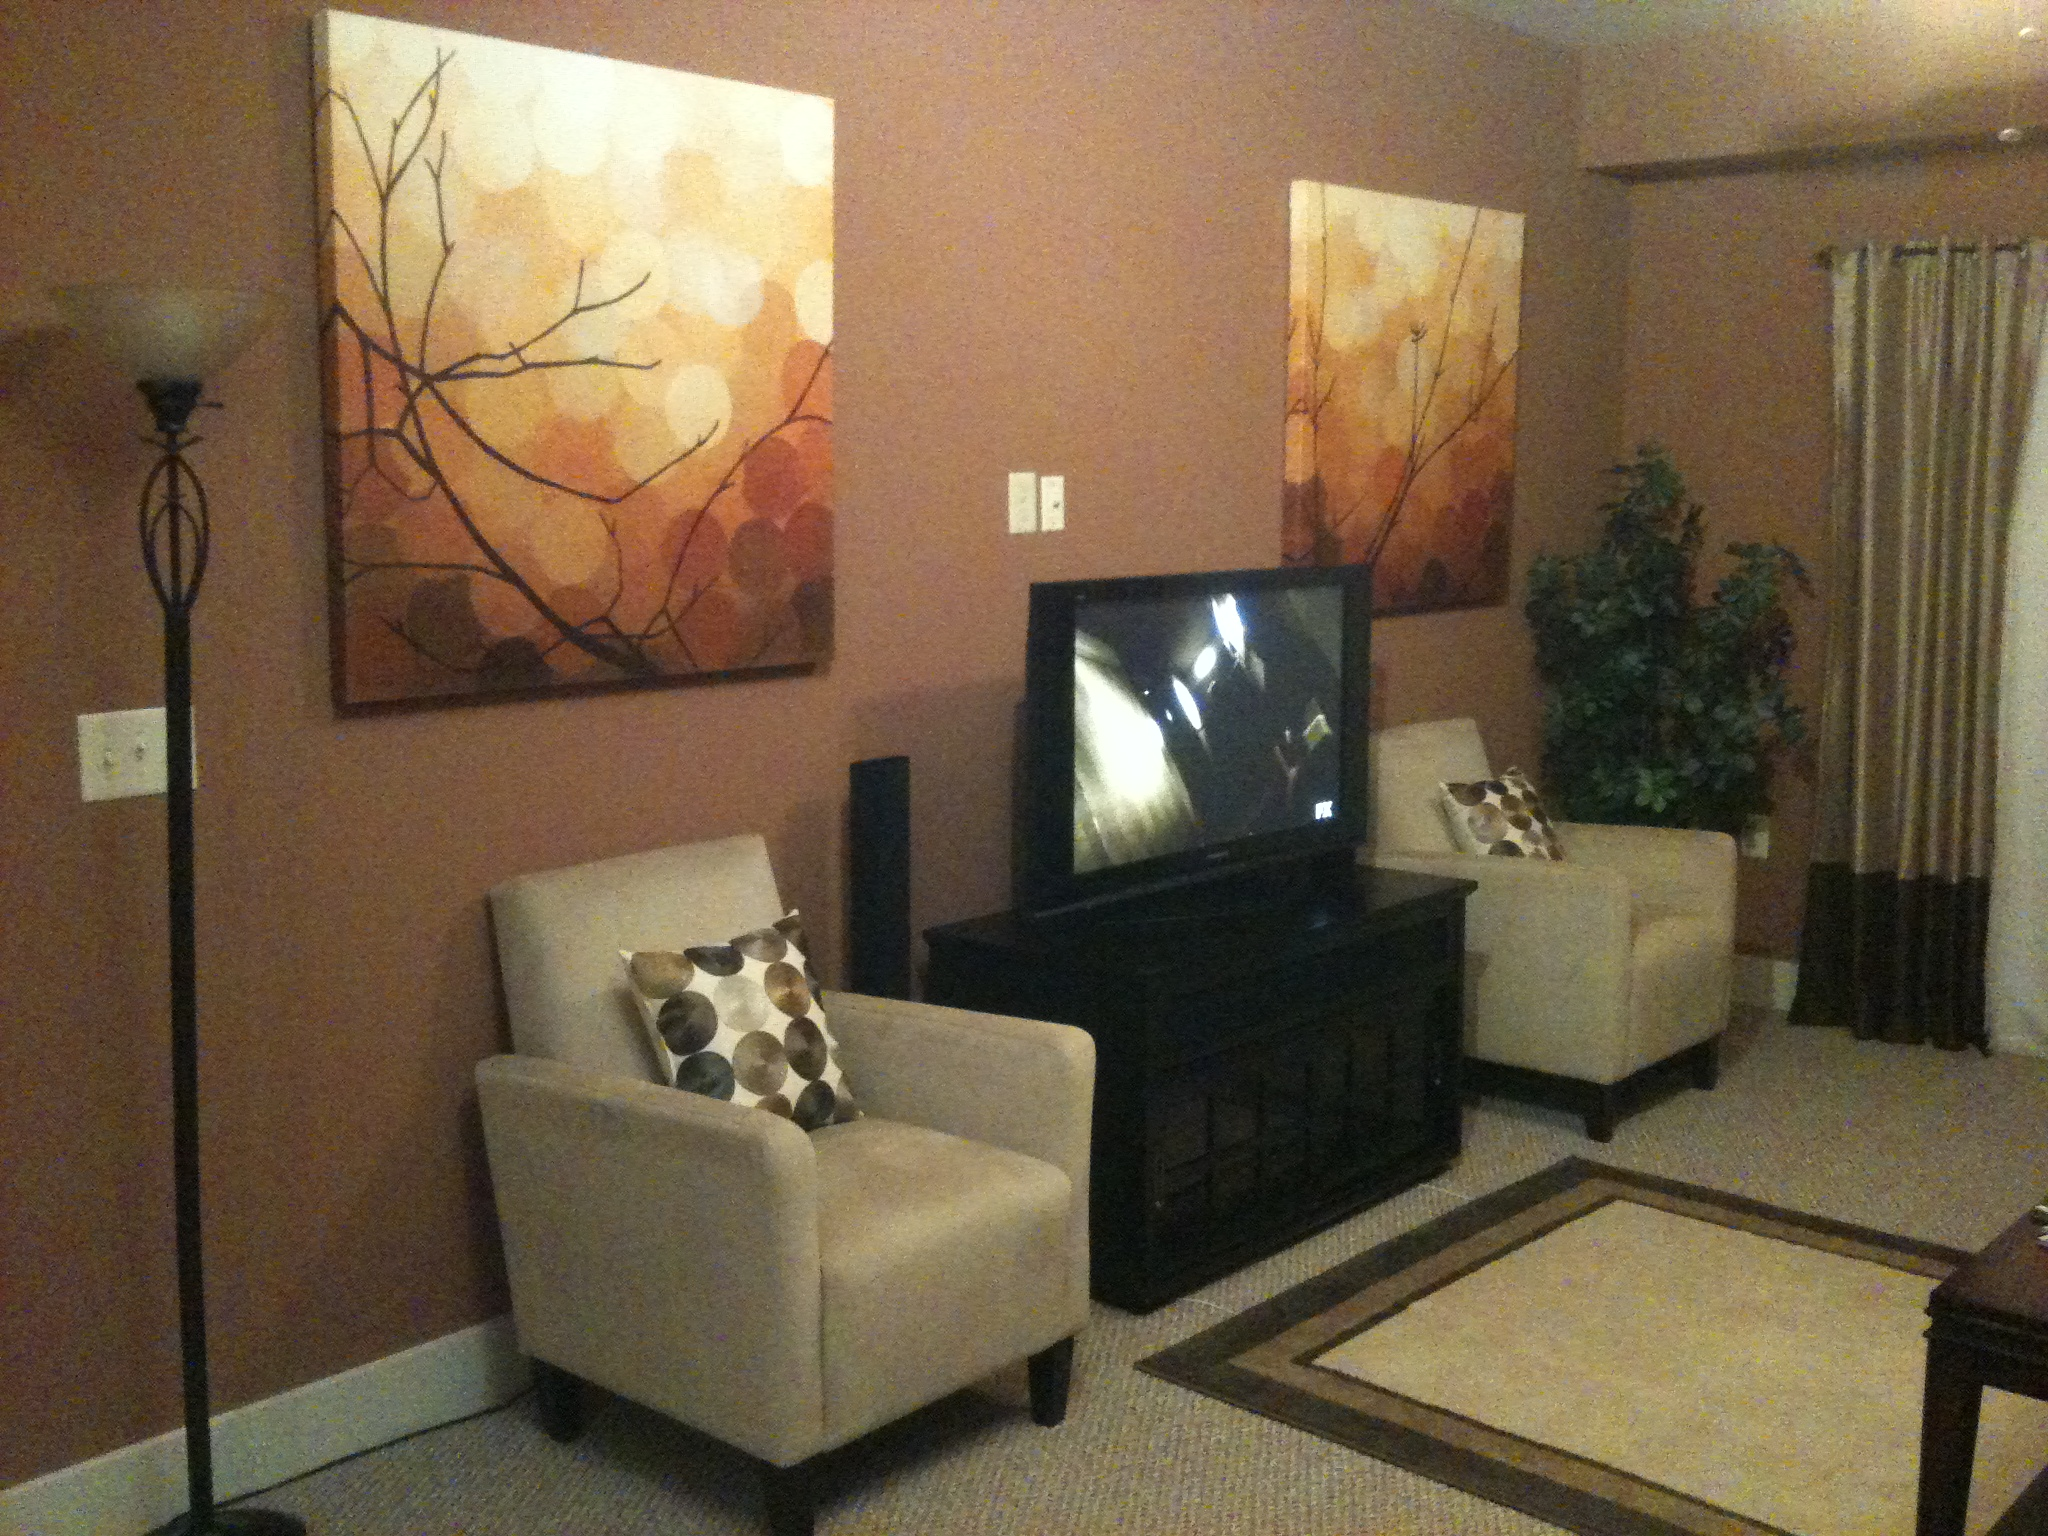 Home design living room paint colors for living room walls - Paint ideas for living room walls ...